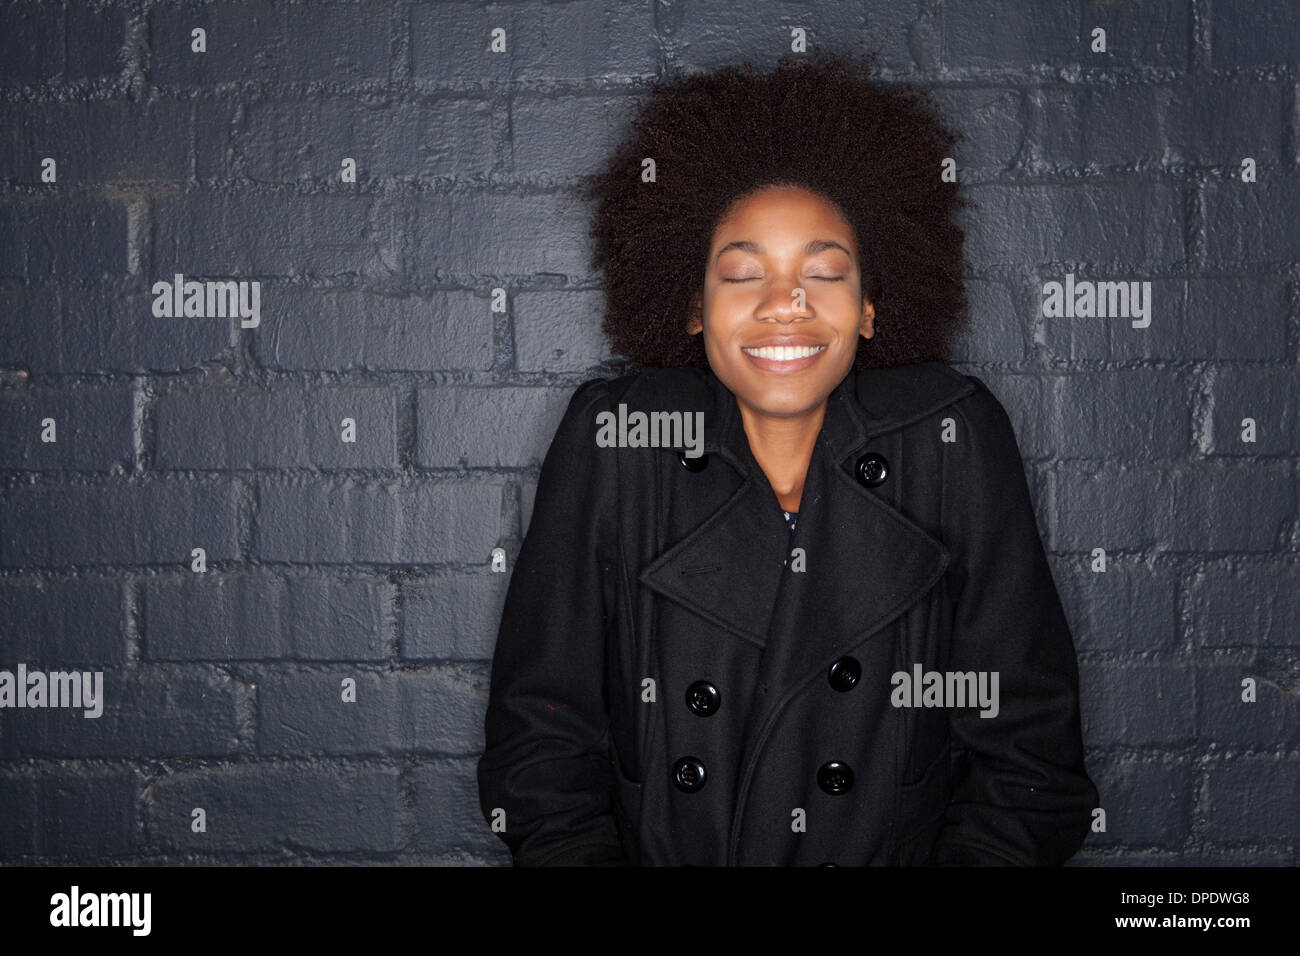 Young woman by black brick wall wearing black jacket - Stock Image